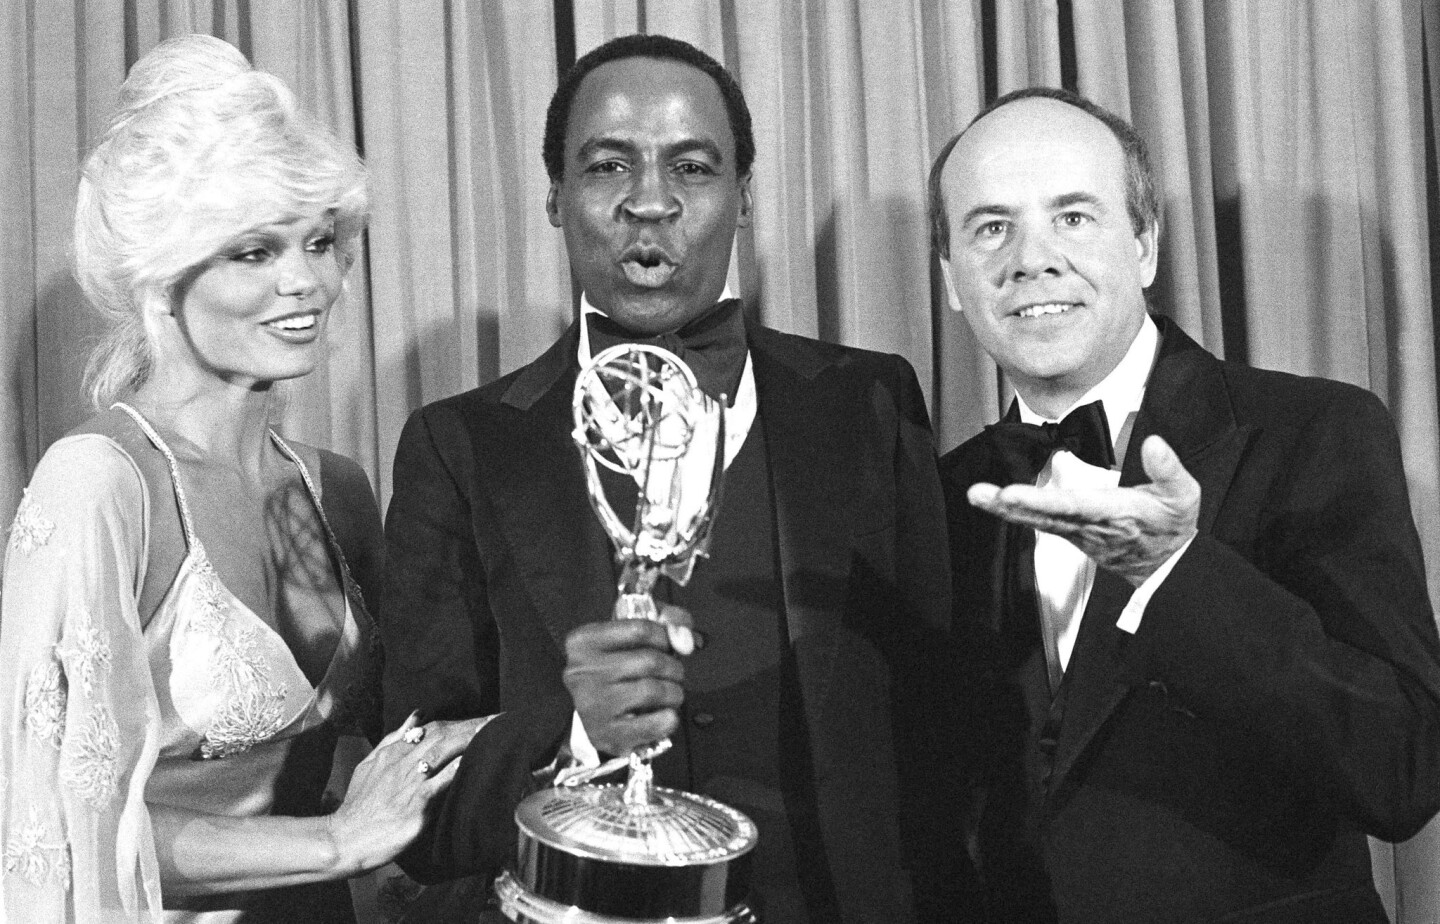 Robert Guillaume: Career in pictures